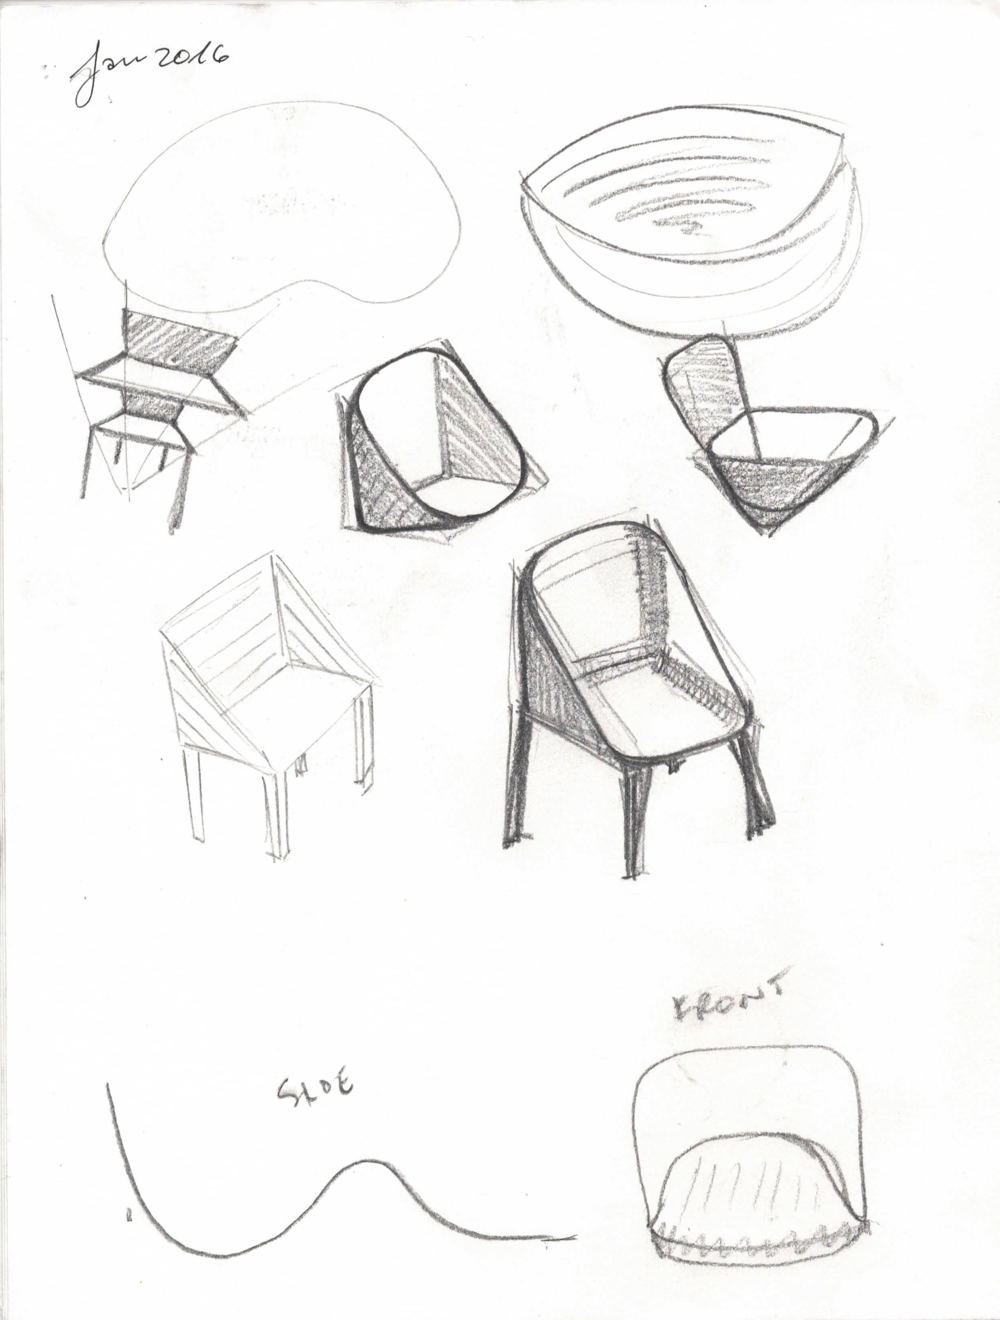 ChairSketch01.png